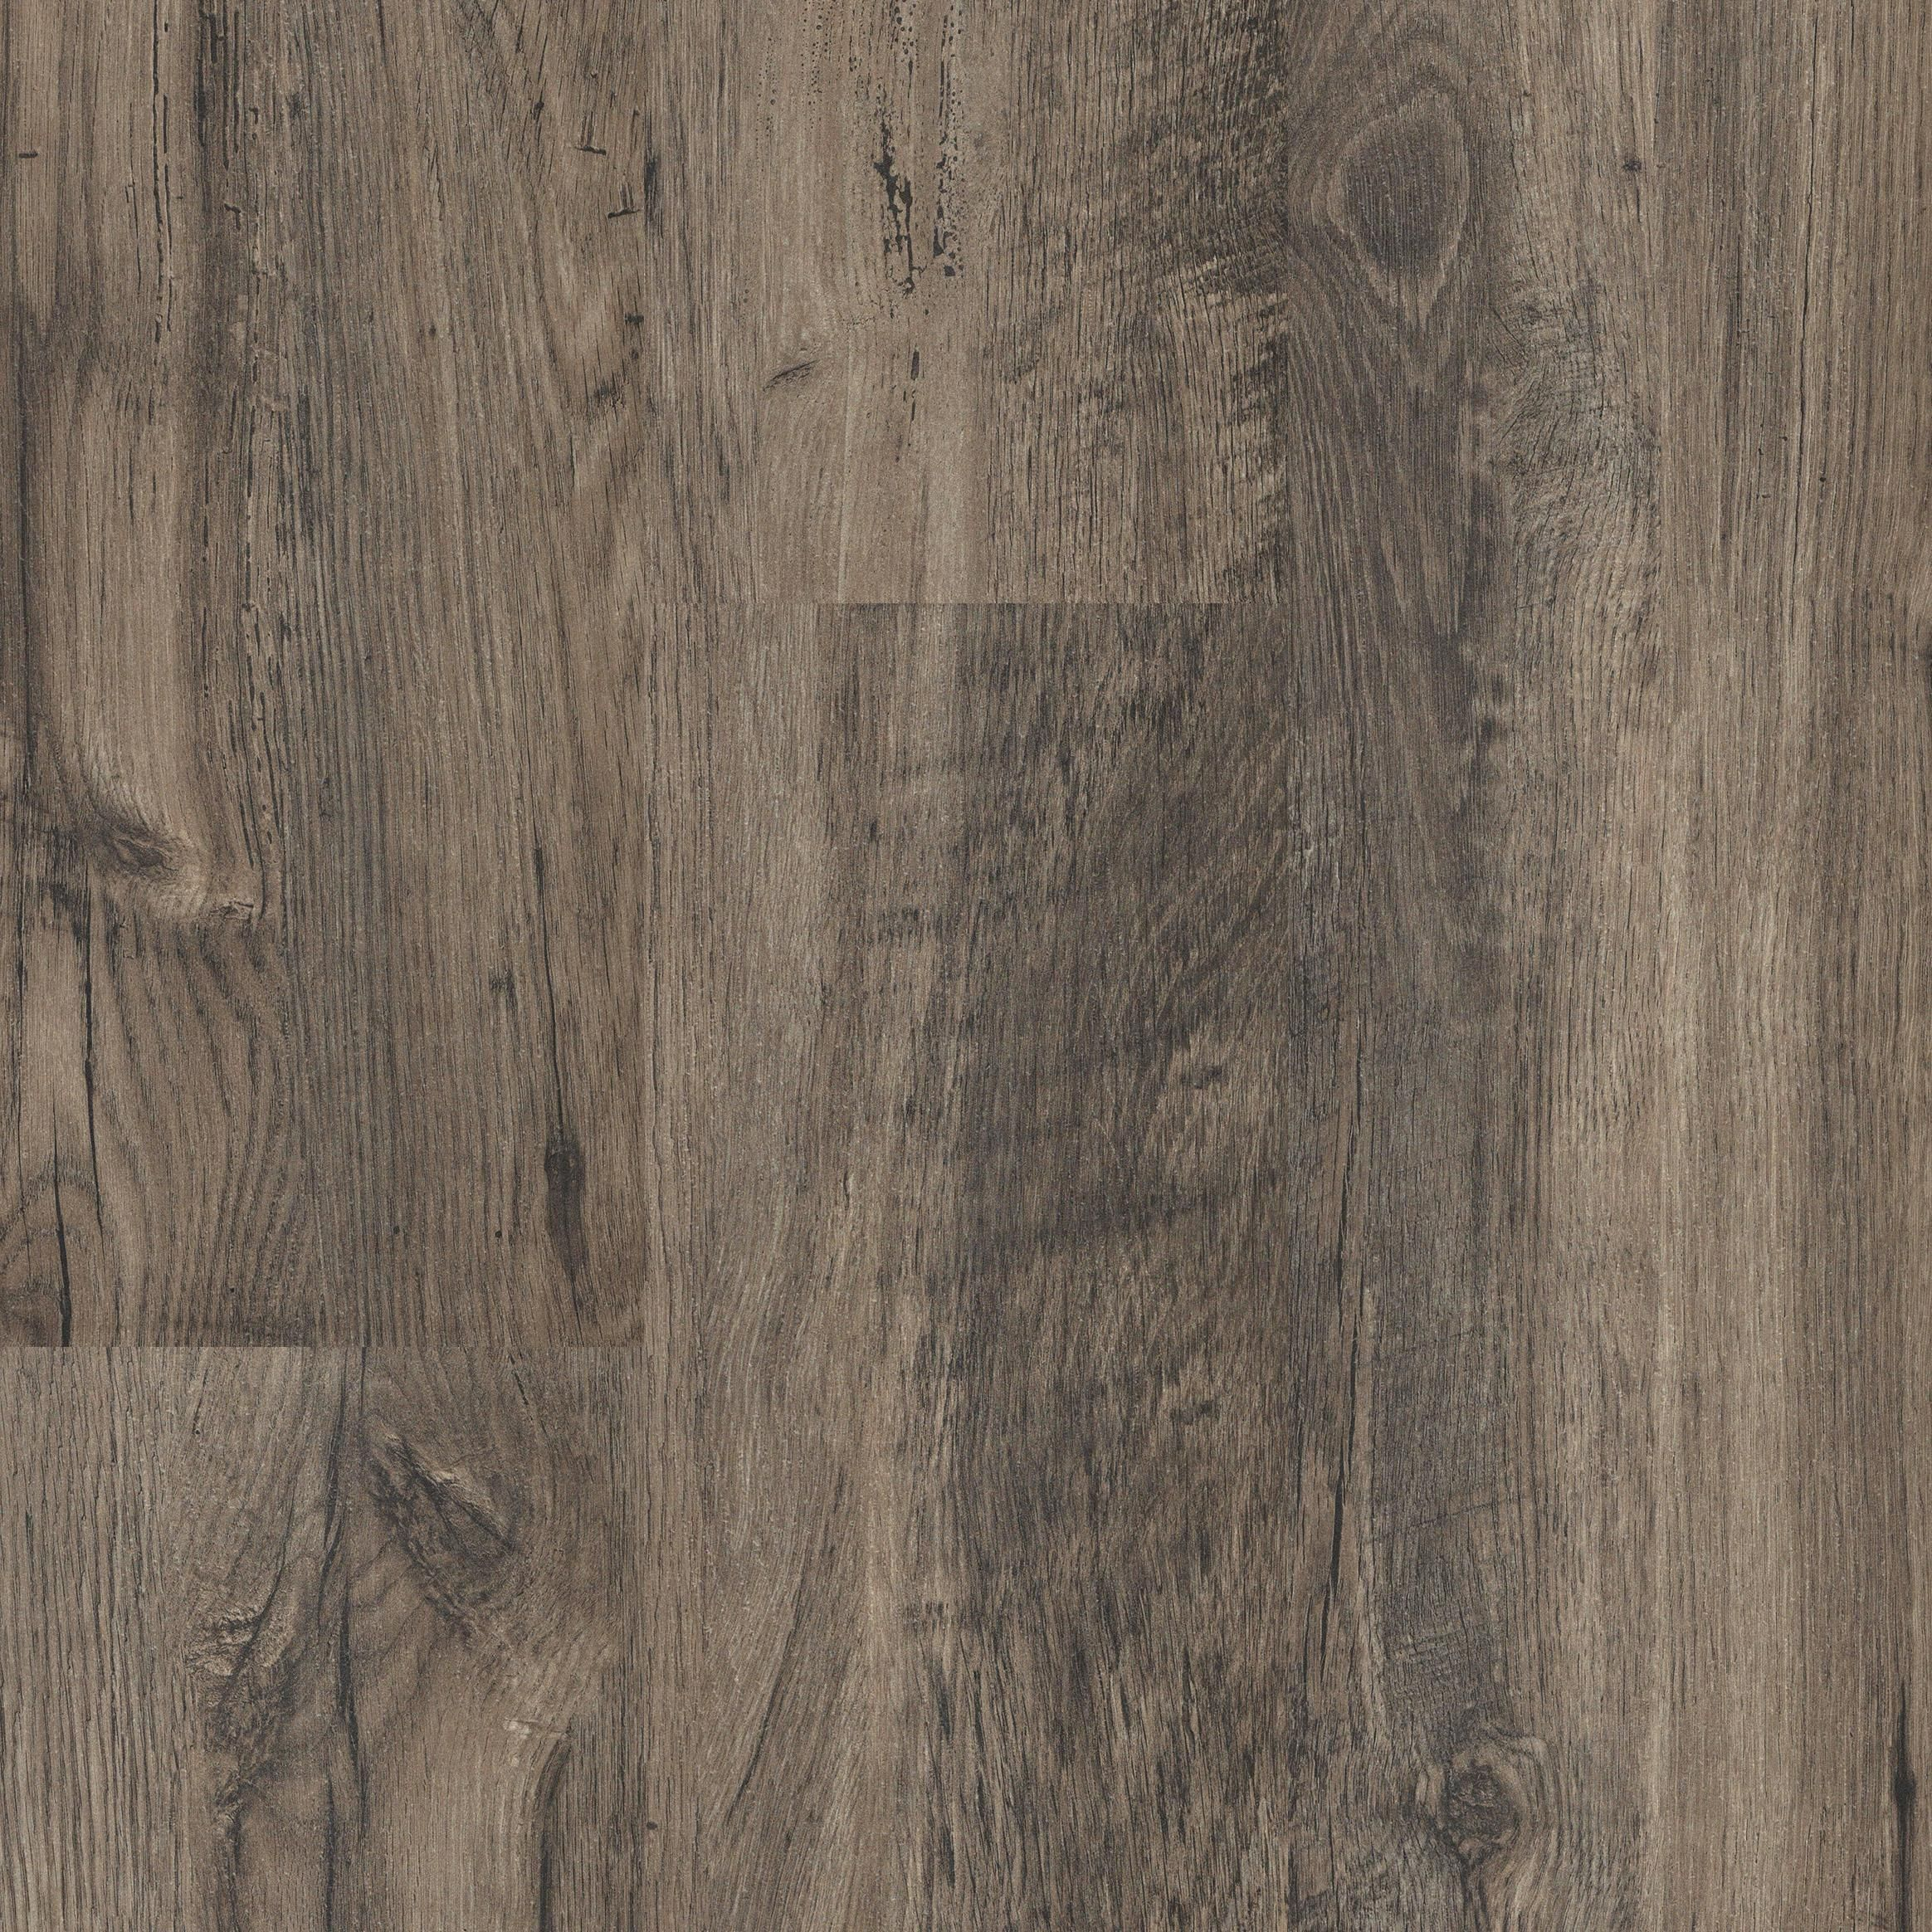 Supreme Click Arbor Creek Maple 10 3mm Laminate Flooring With Attached Pad